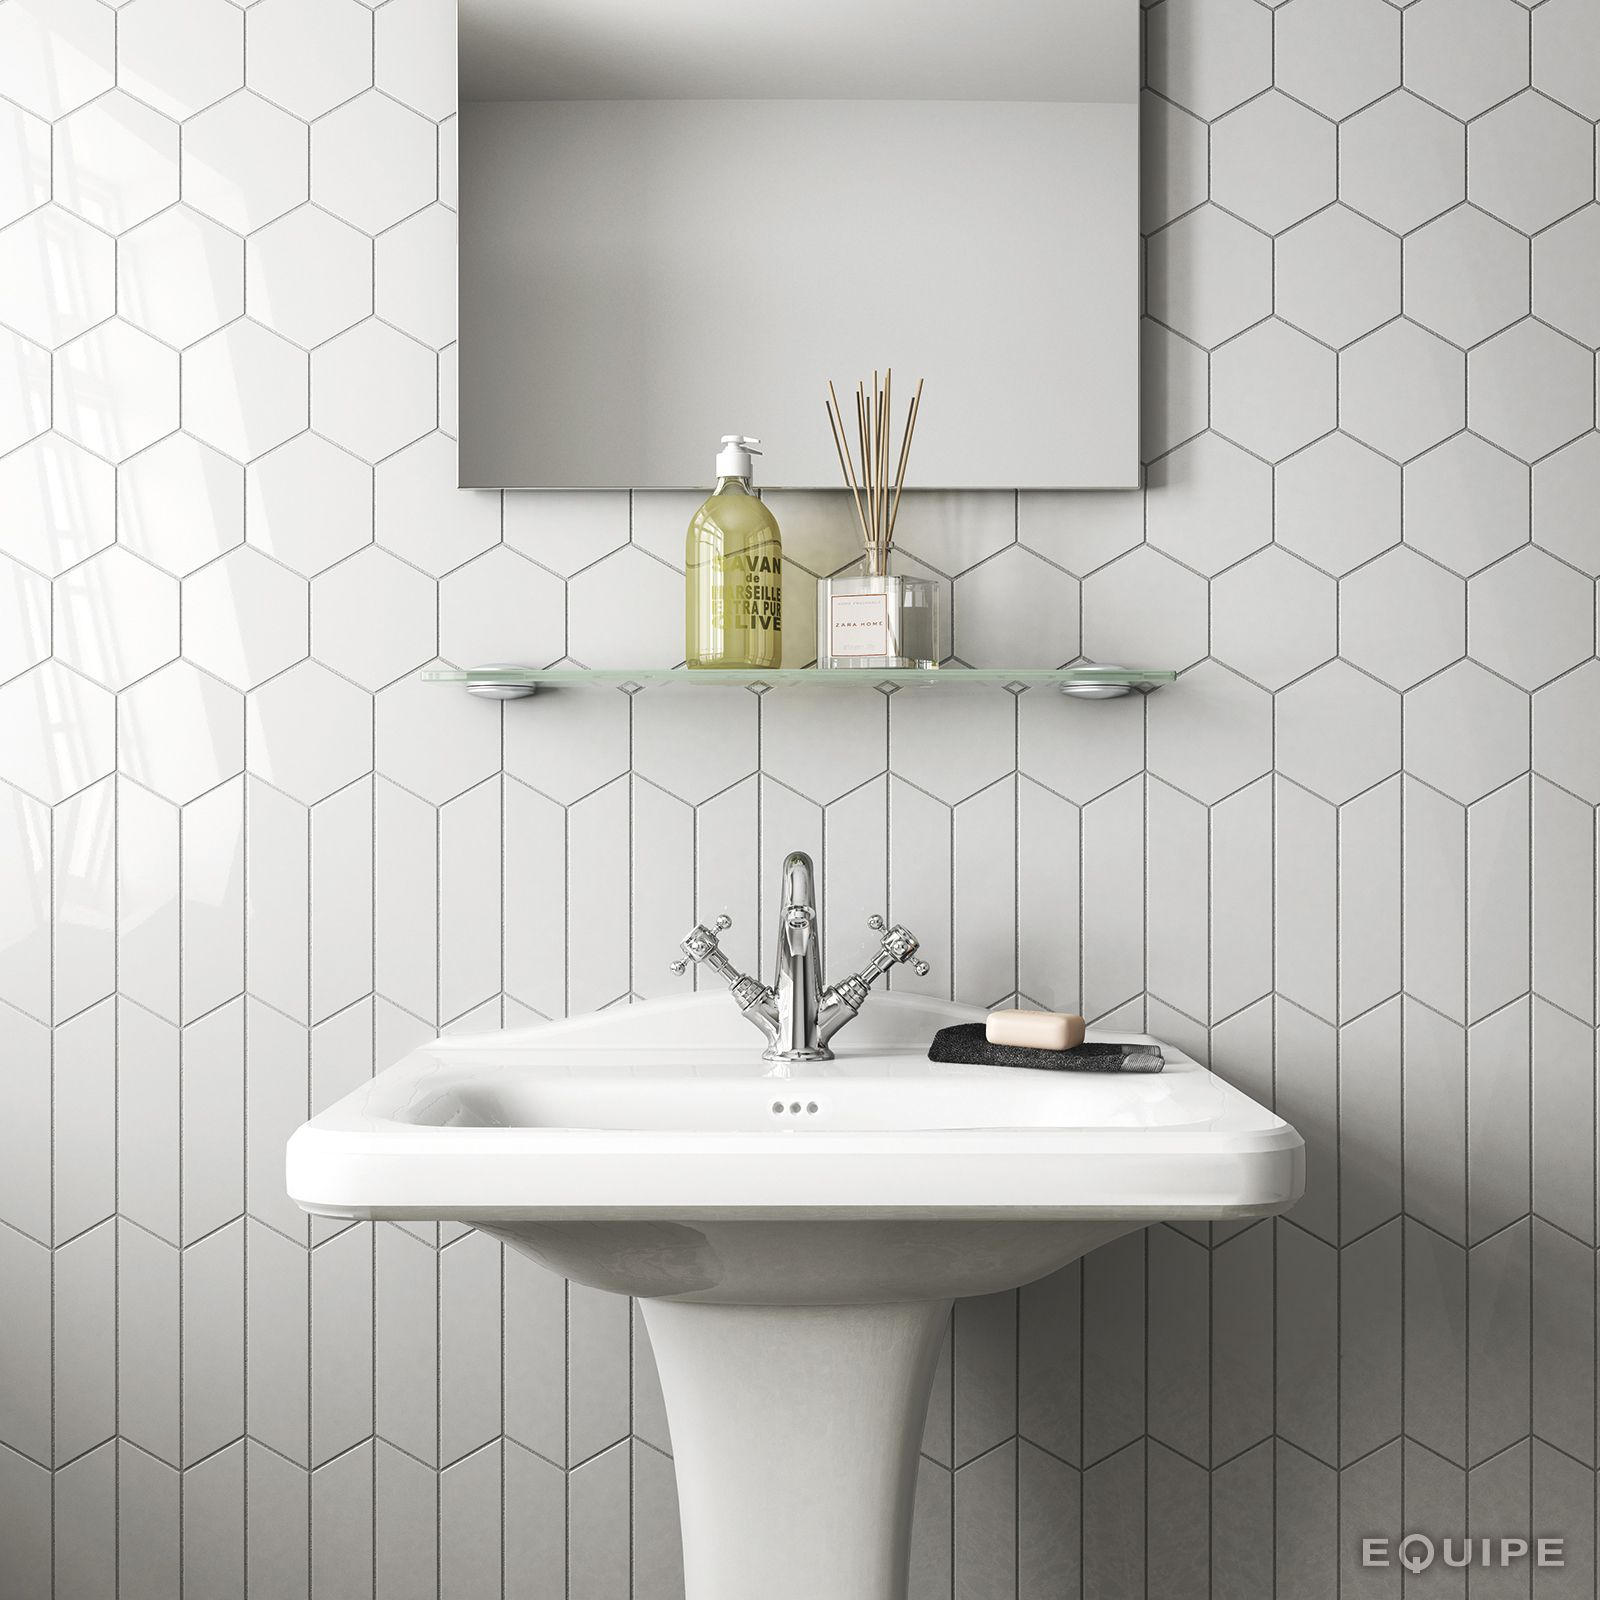 15+ Luxury Bathroom Tile Patterns Ideas | Pinterest | Scale, Walls ...